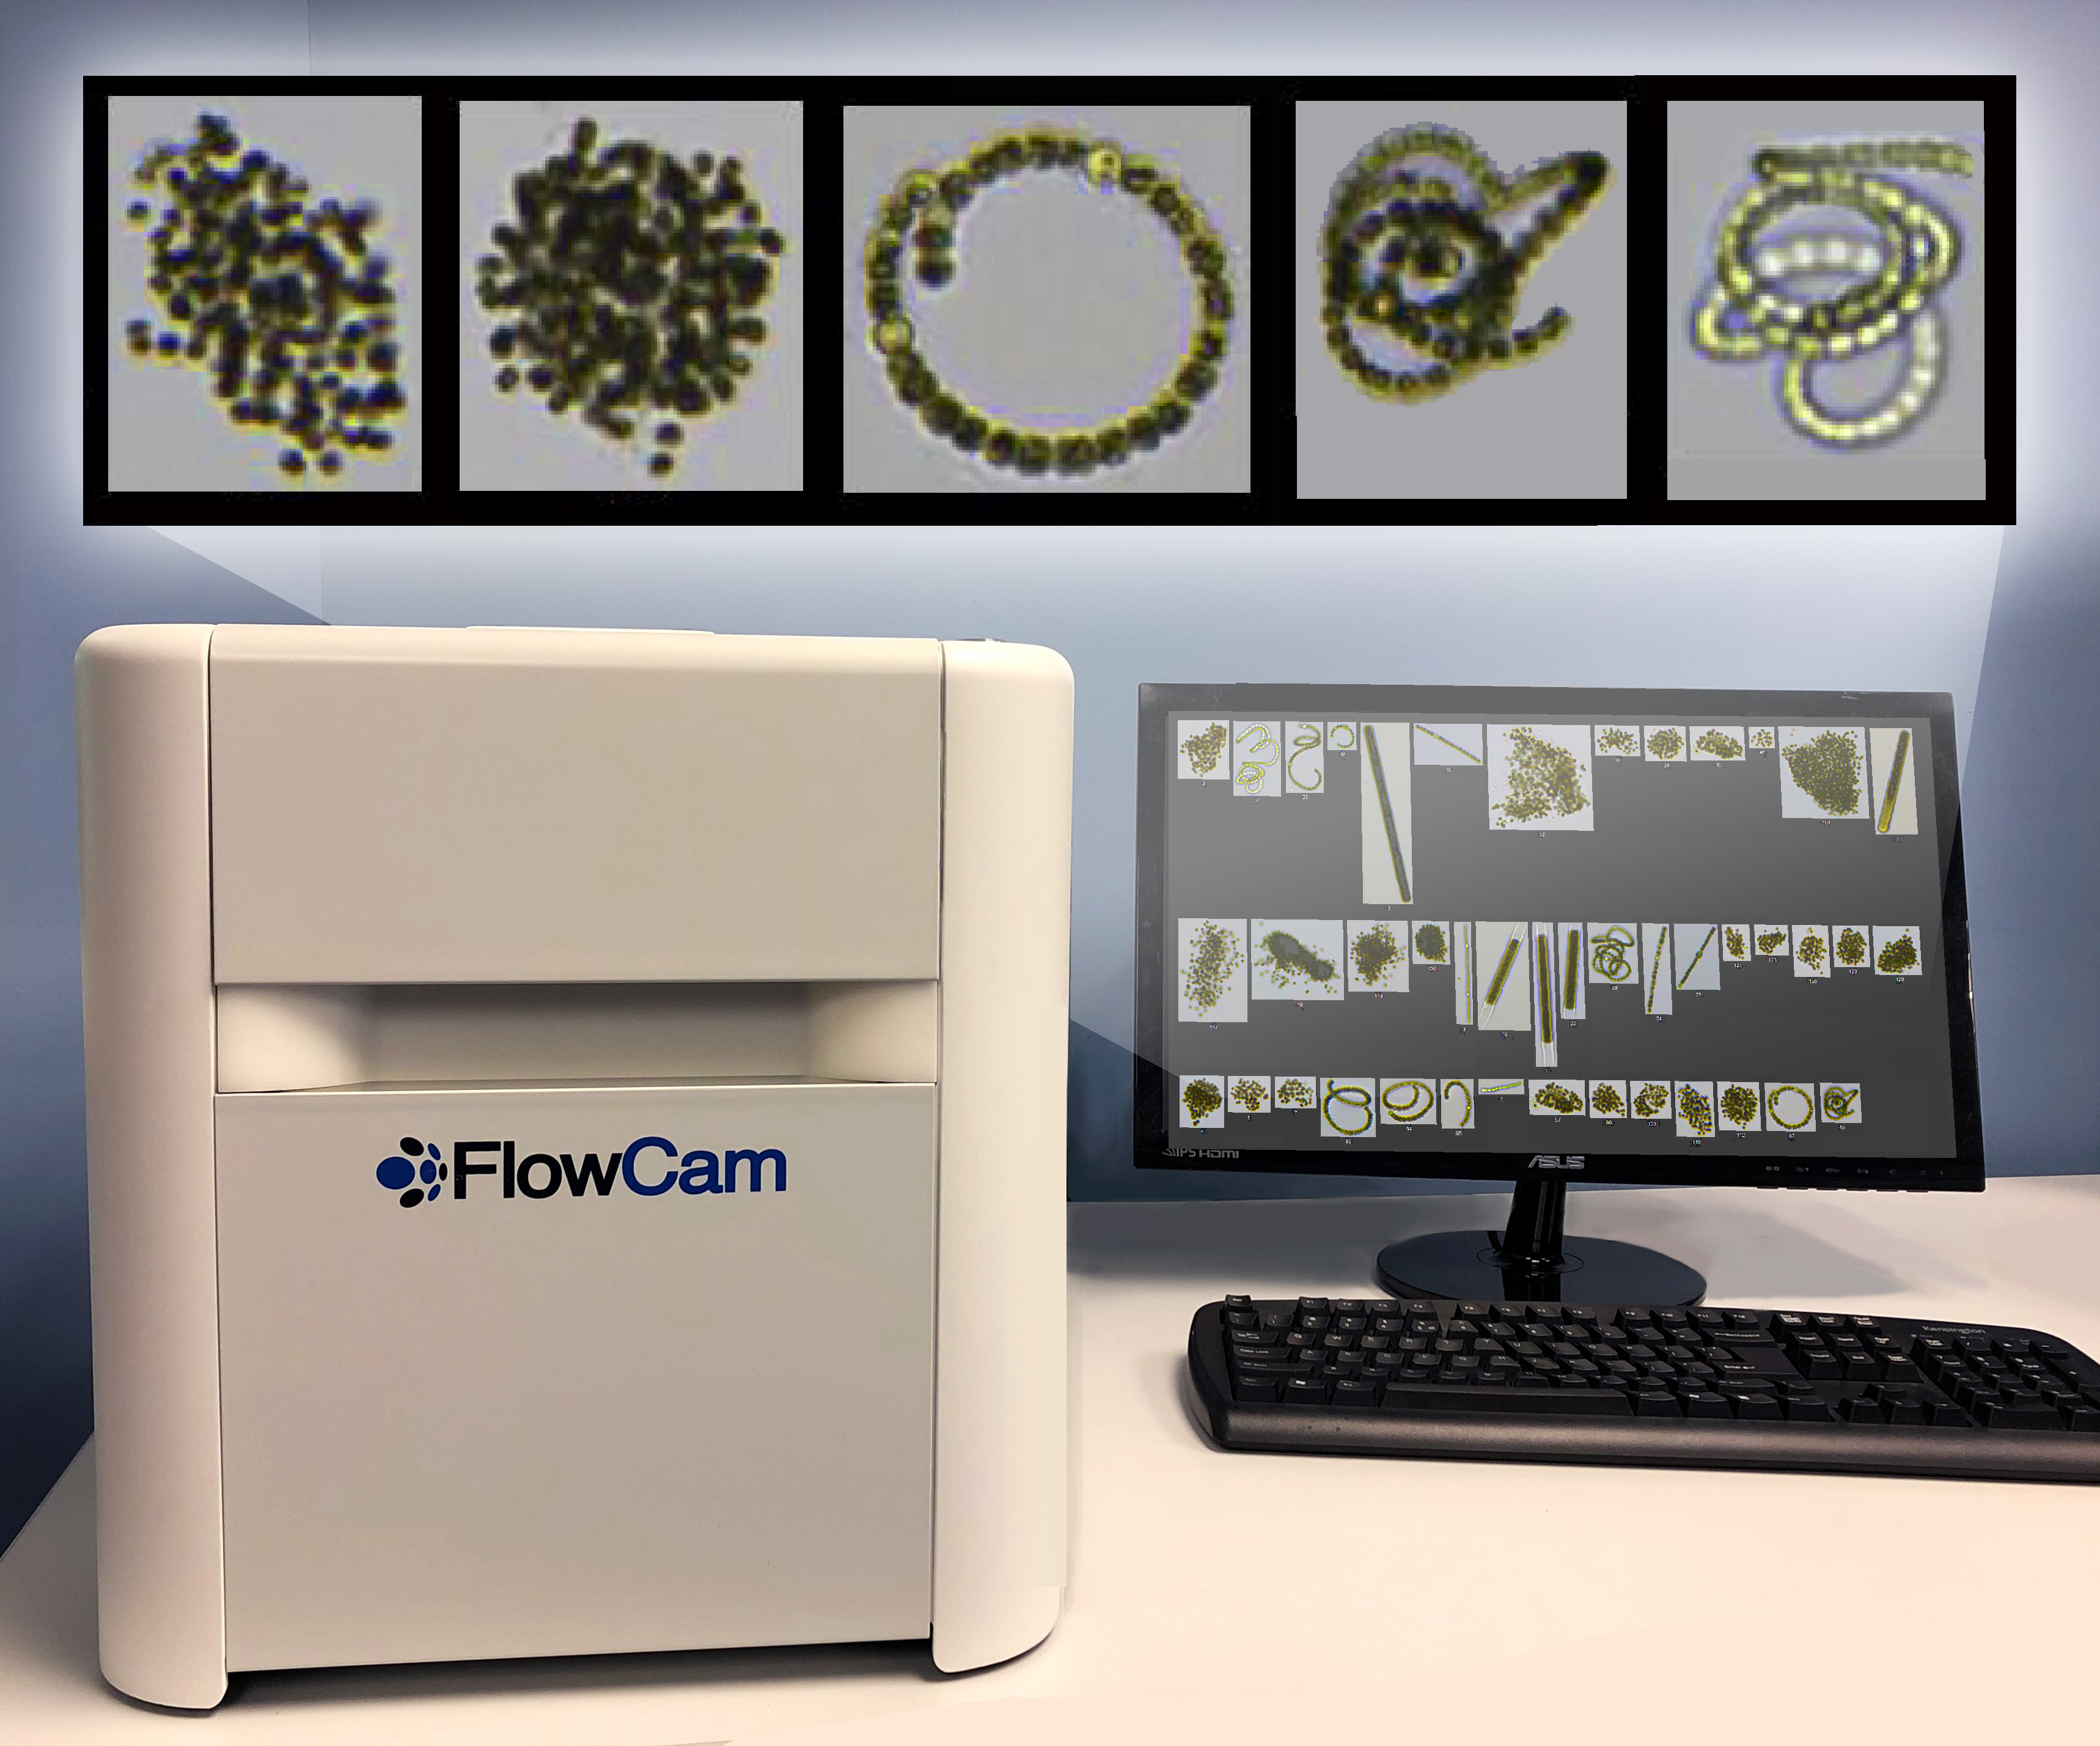 FlowCam Cyano benchtop w. collage